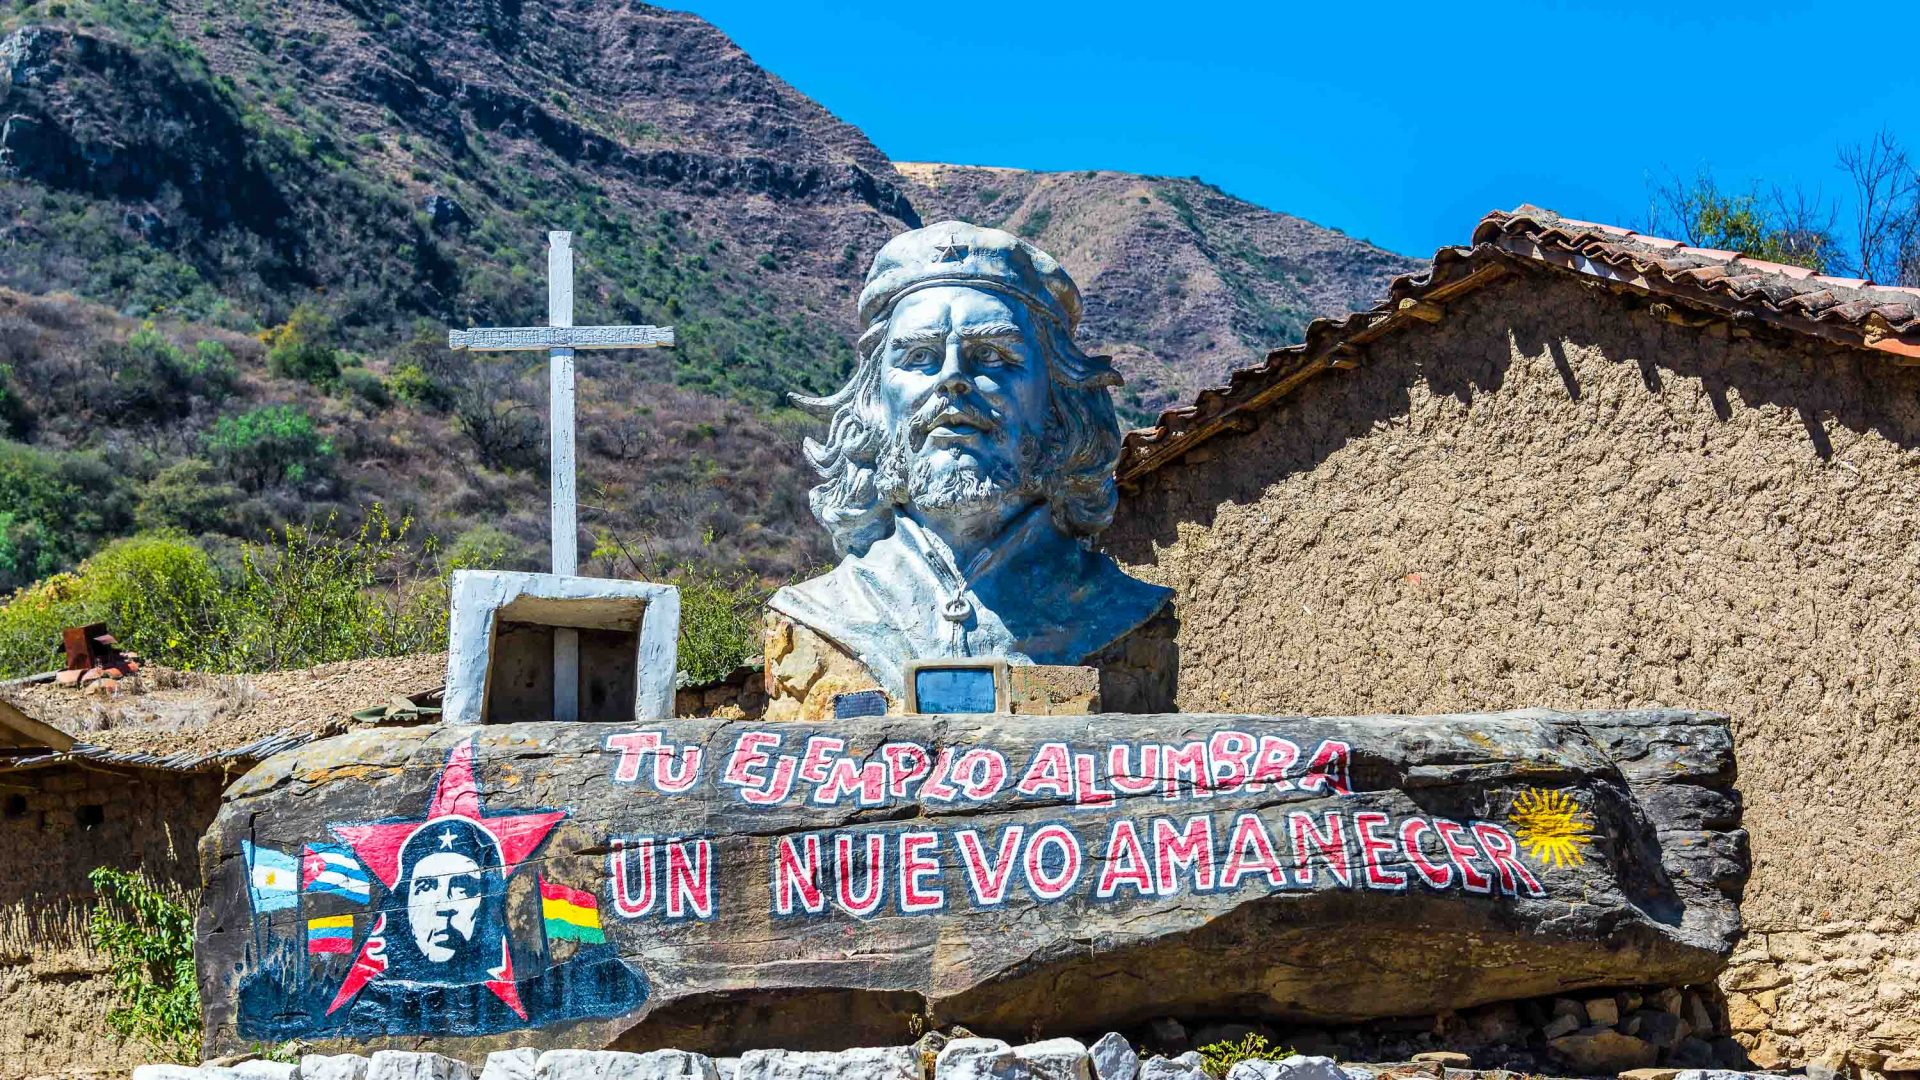 Revolution road: On the trail of Che Guevara